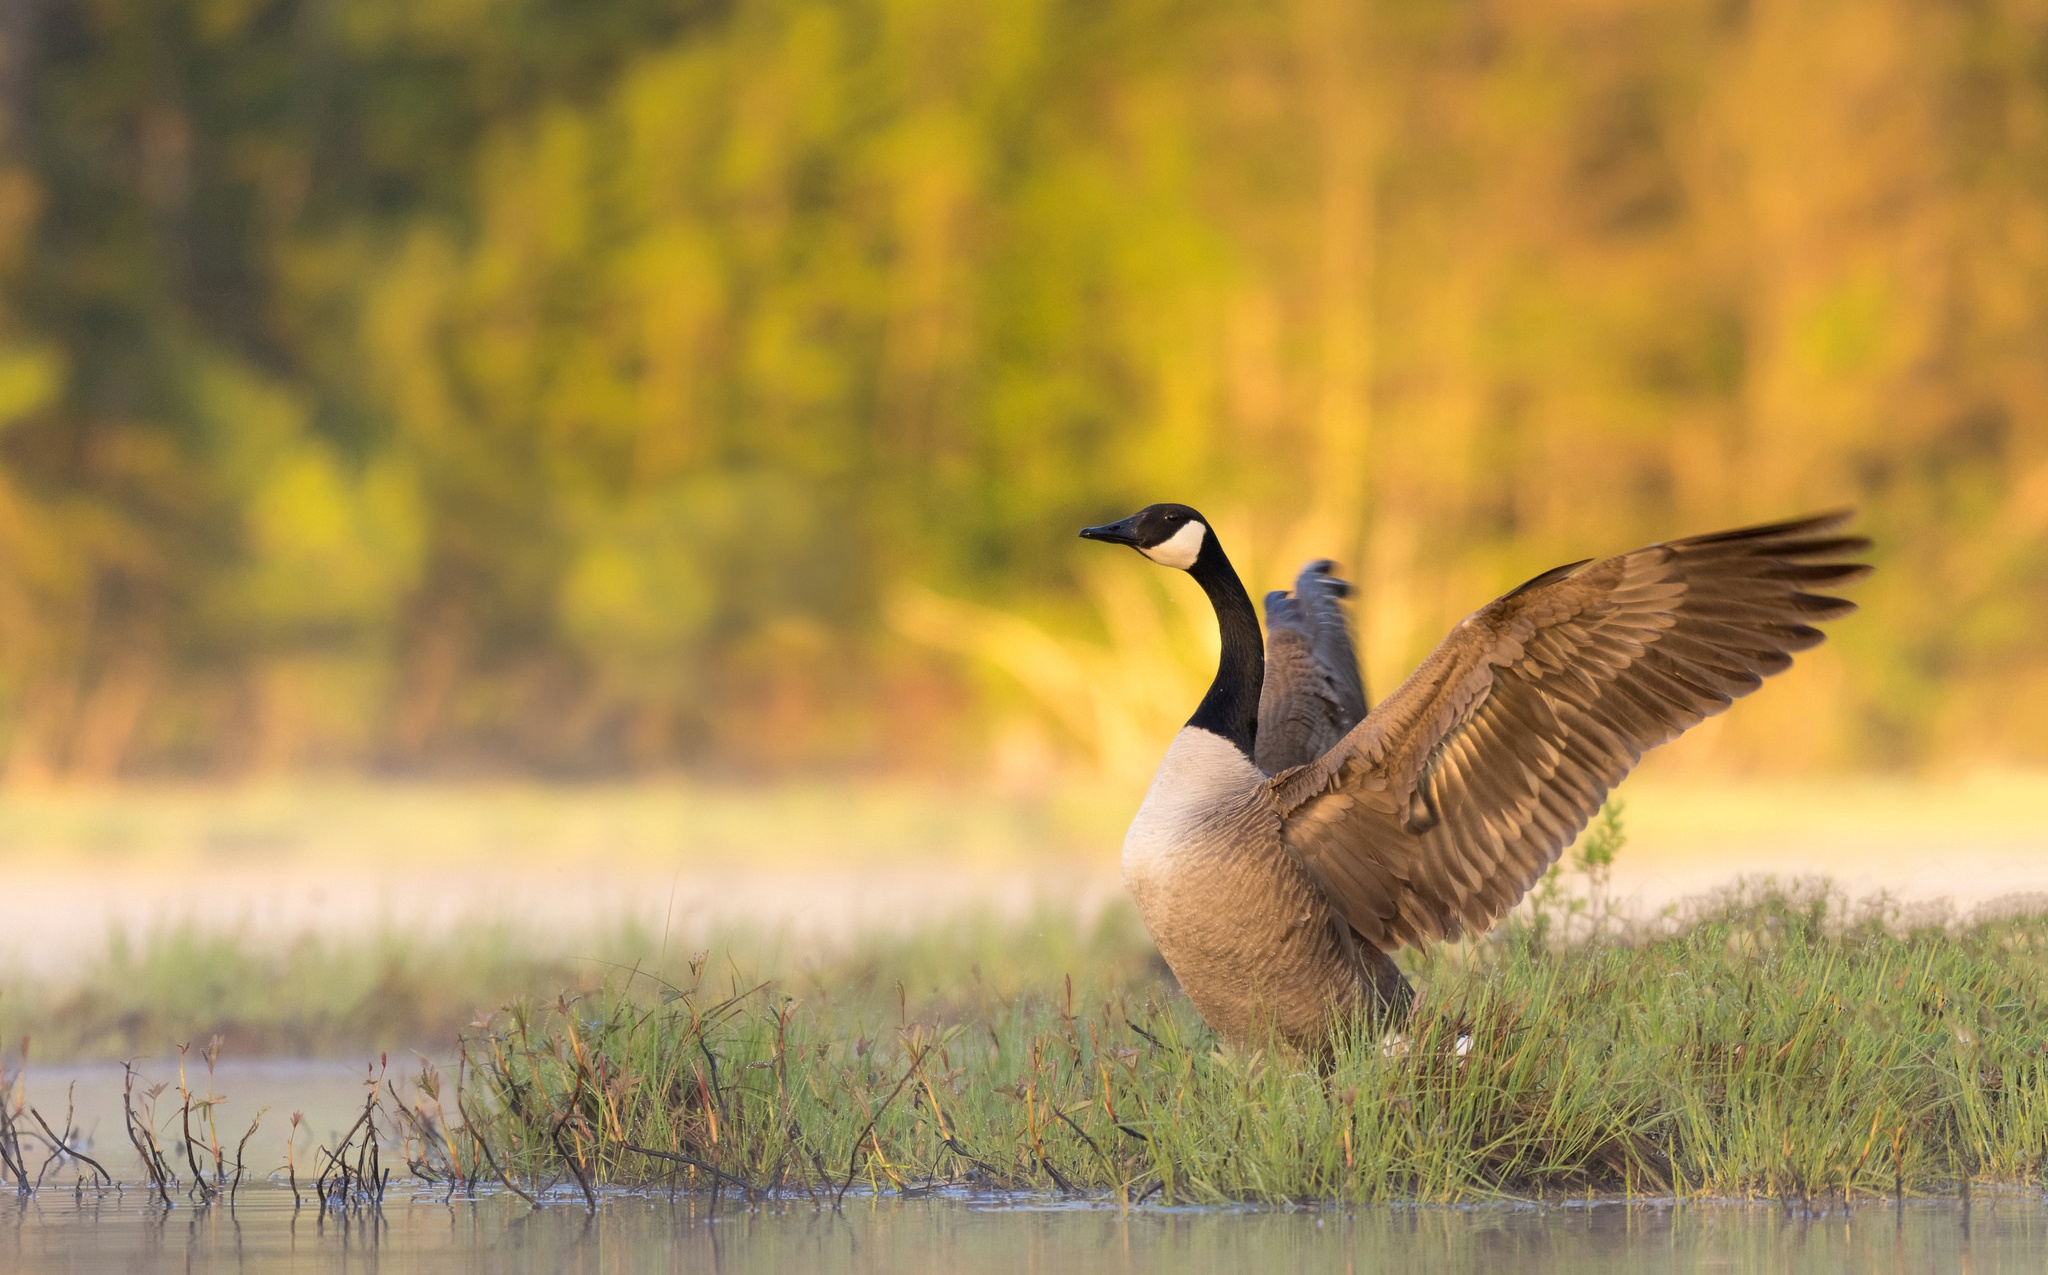 Fall Wallpaper For Large Monitors Canada Goose Hd Wallpaper Background Image 2048x1275